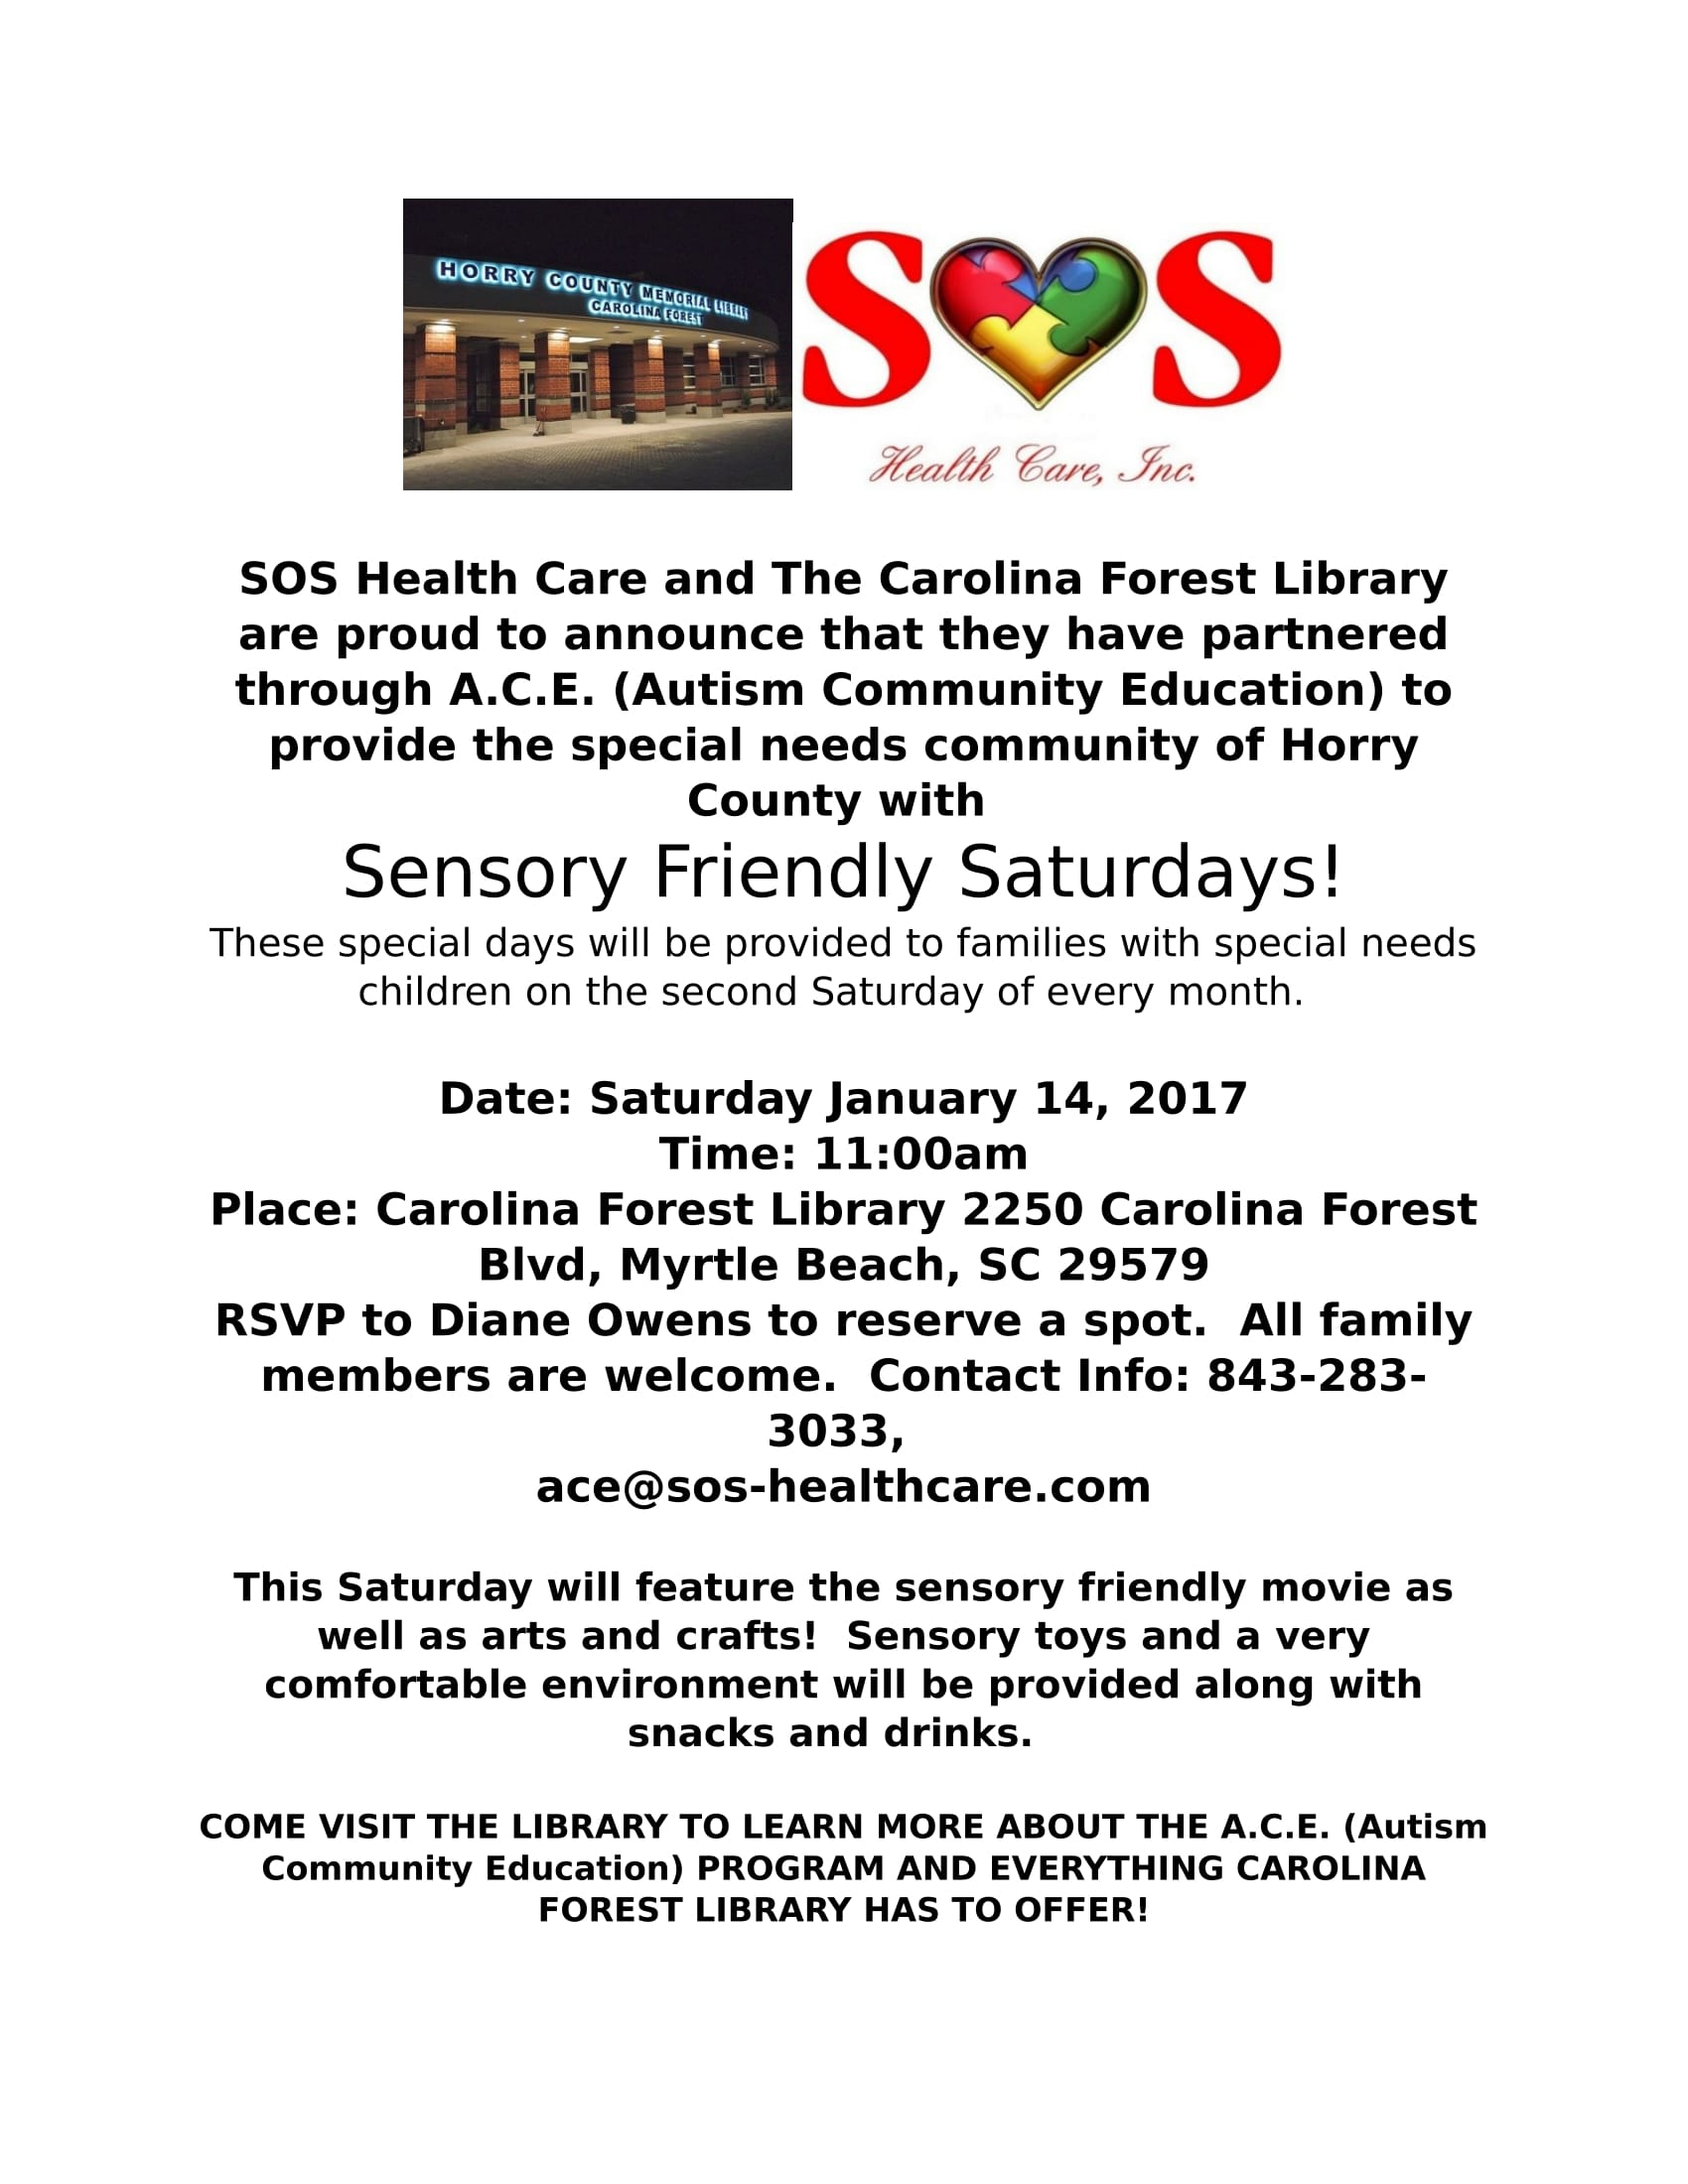 Carolina_Forest_Library_Autism_Community_Education